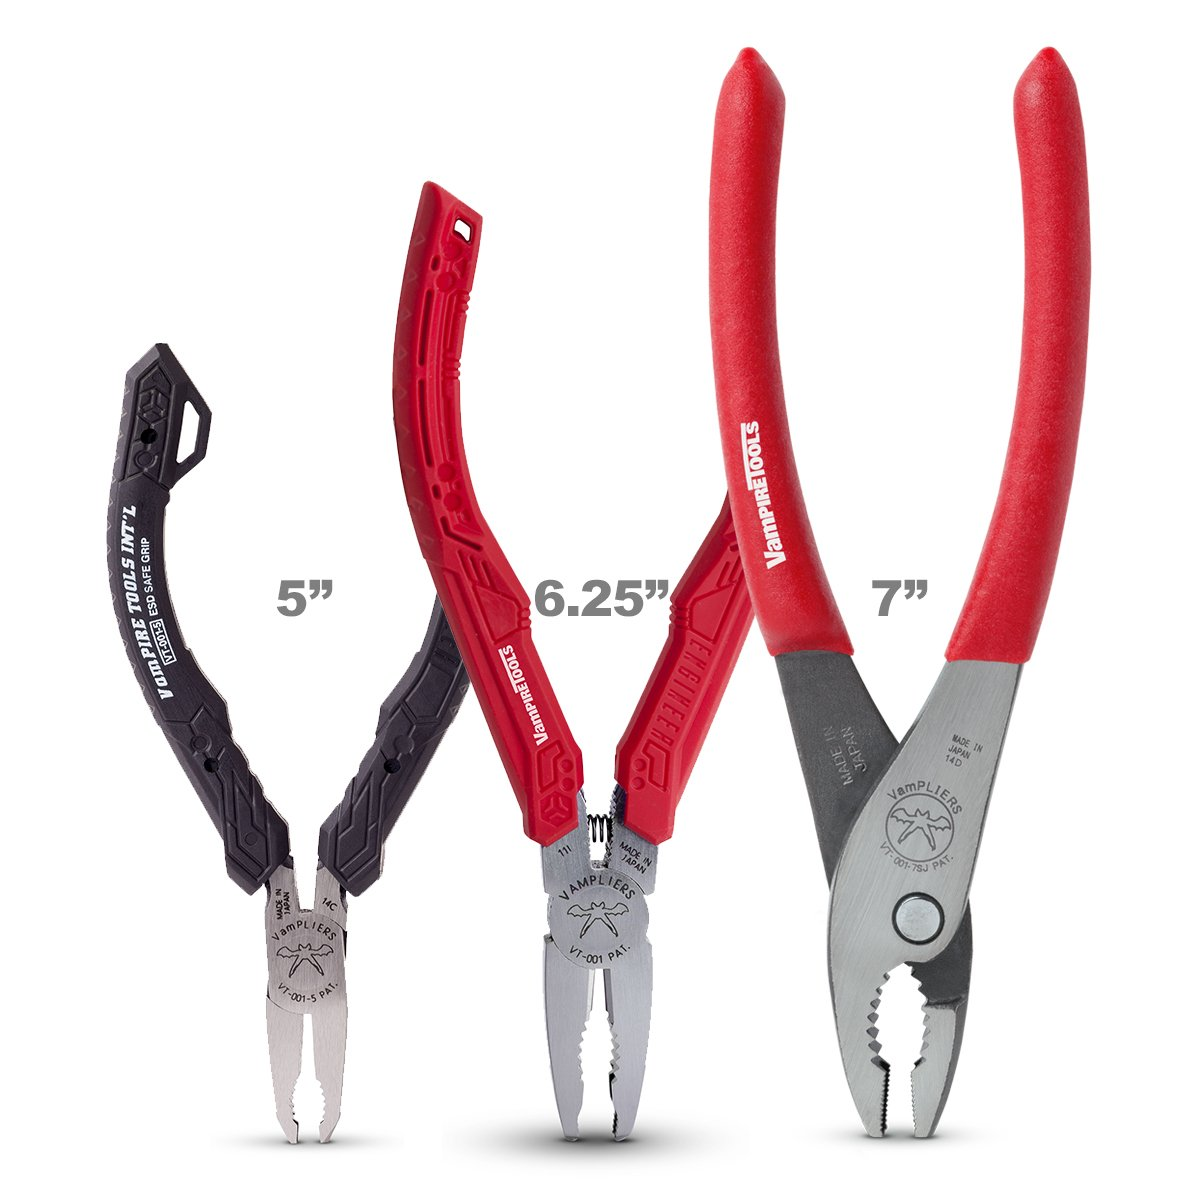 VAMPIRE PROFESSIONAL TOOLS VamPLIERS Best Made Pliers! 3-PC Set S3A Specialty Screw Extraction Pliers. Extract Stripped Stuck Security, Corroded, or Rusted Screws